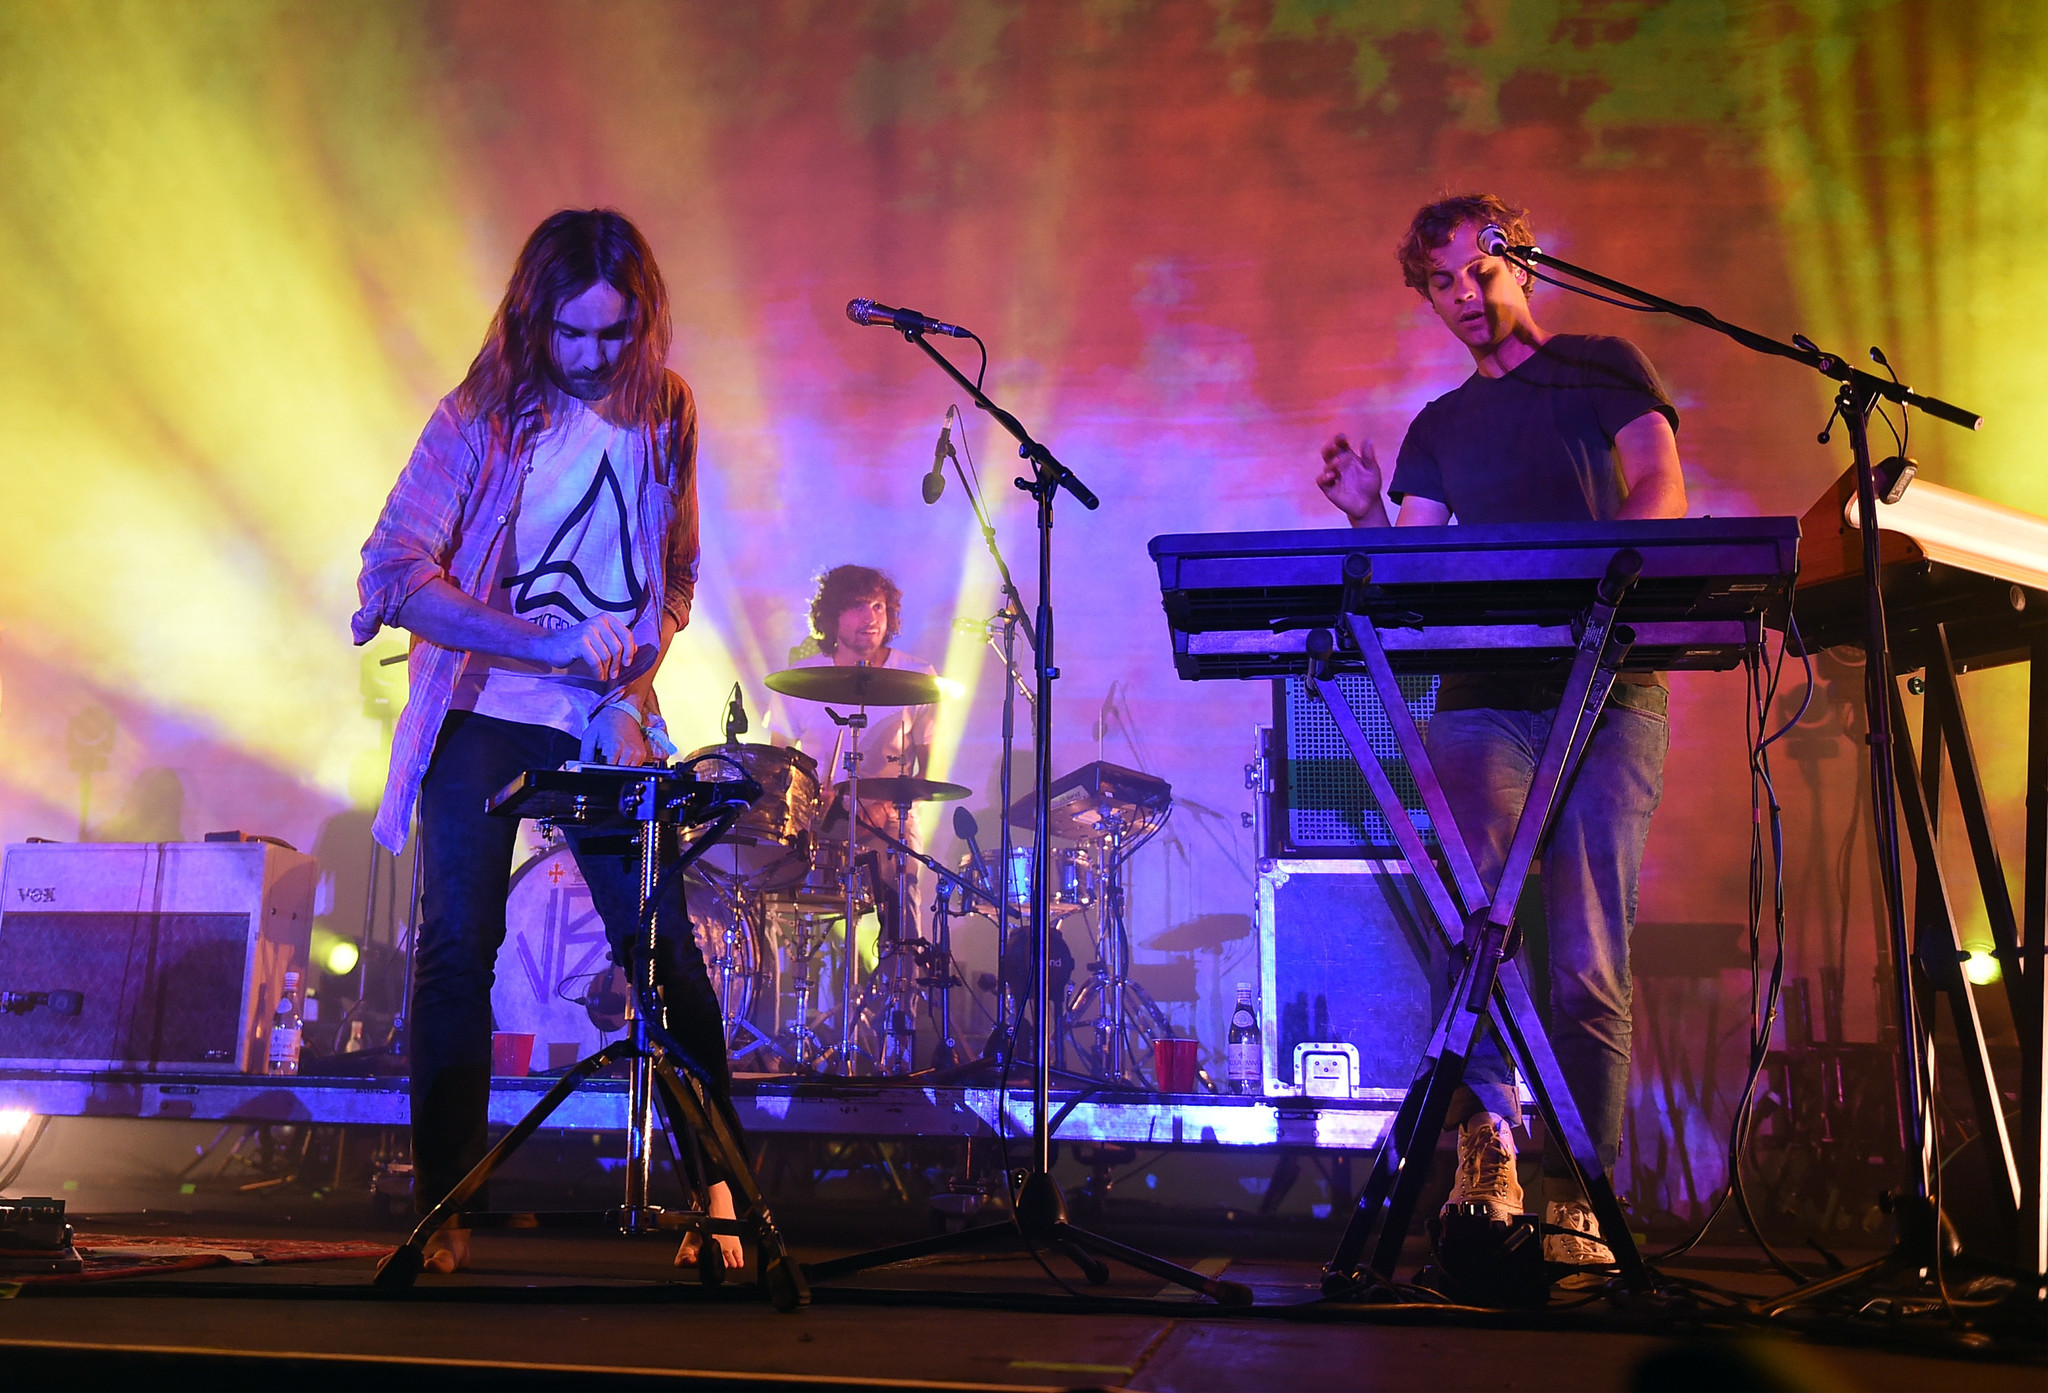 Tame Impala's 'The Less I Know the Better' voted best song of the 2010s